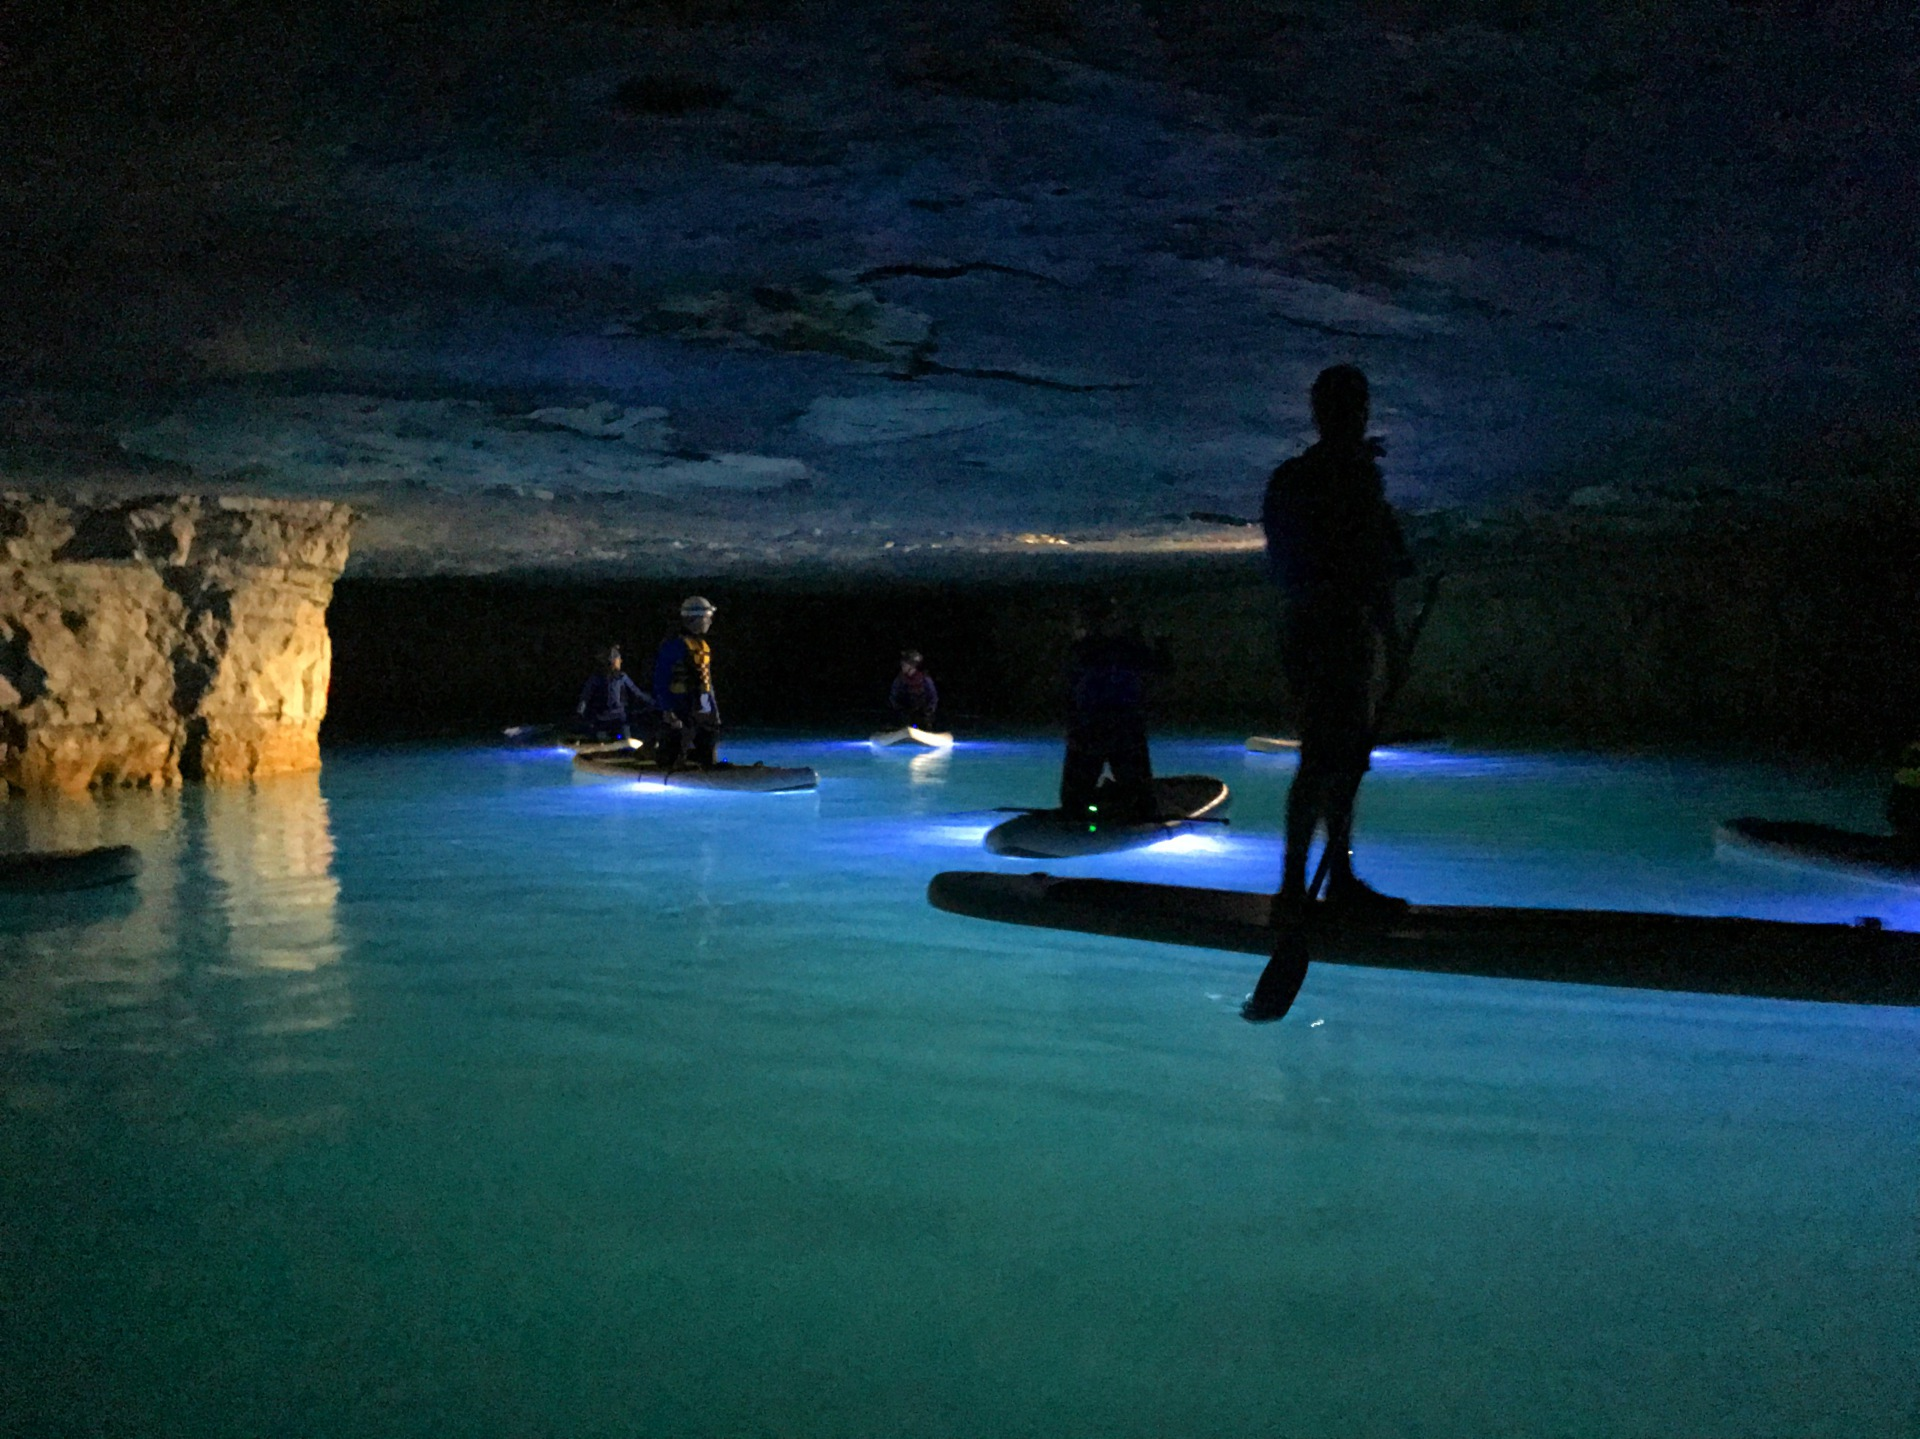 cave sup tour ky, ky cave, sup kentucky